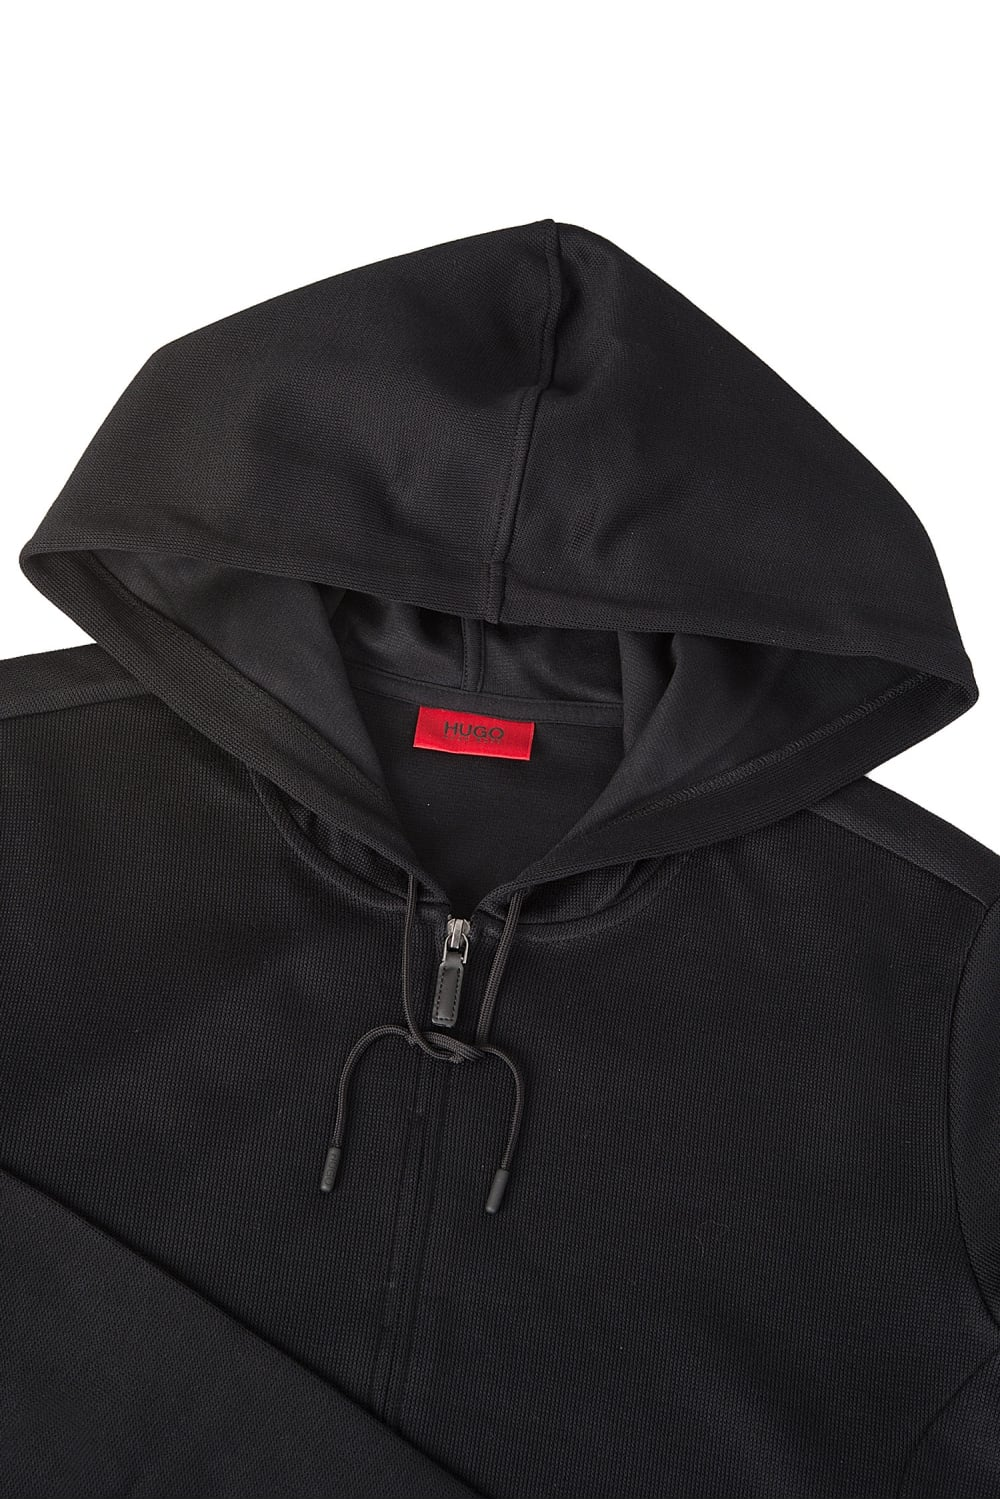 ecc1845c8 Hugo Boss Doscato Hooded Jacket